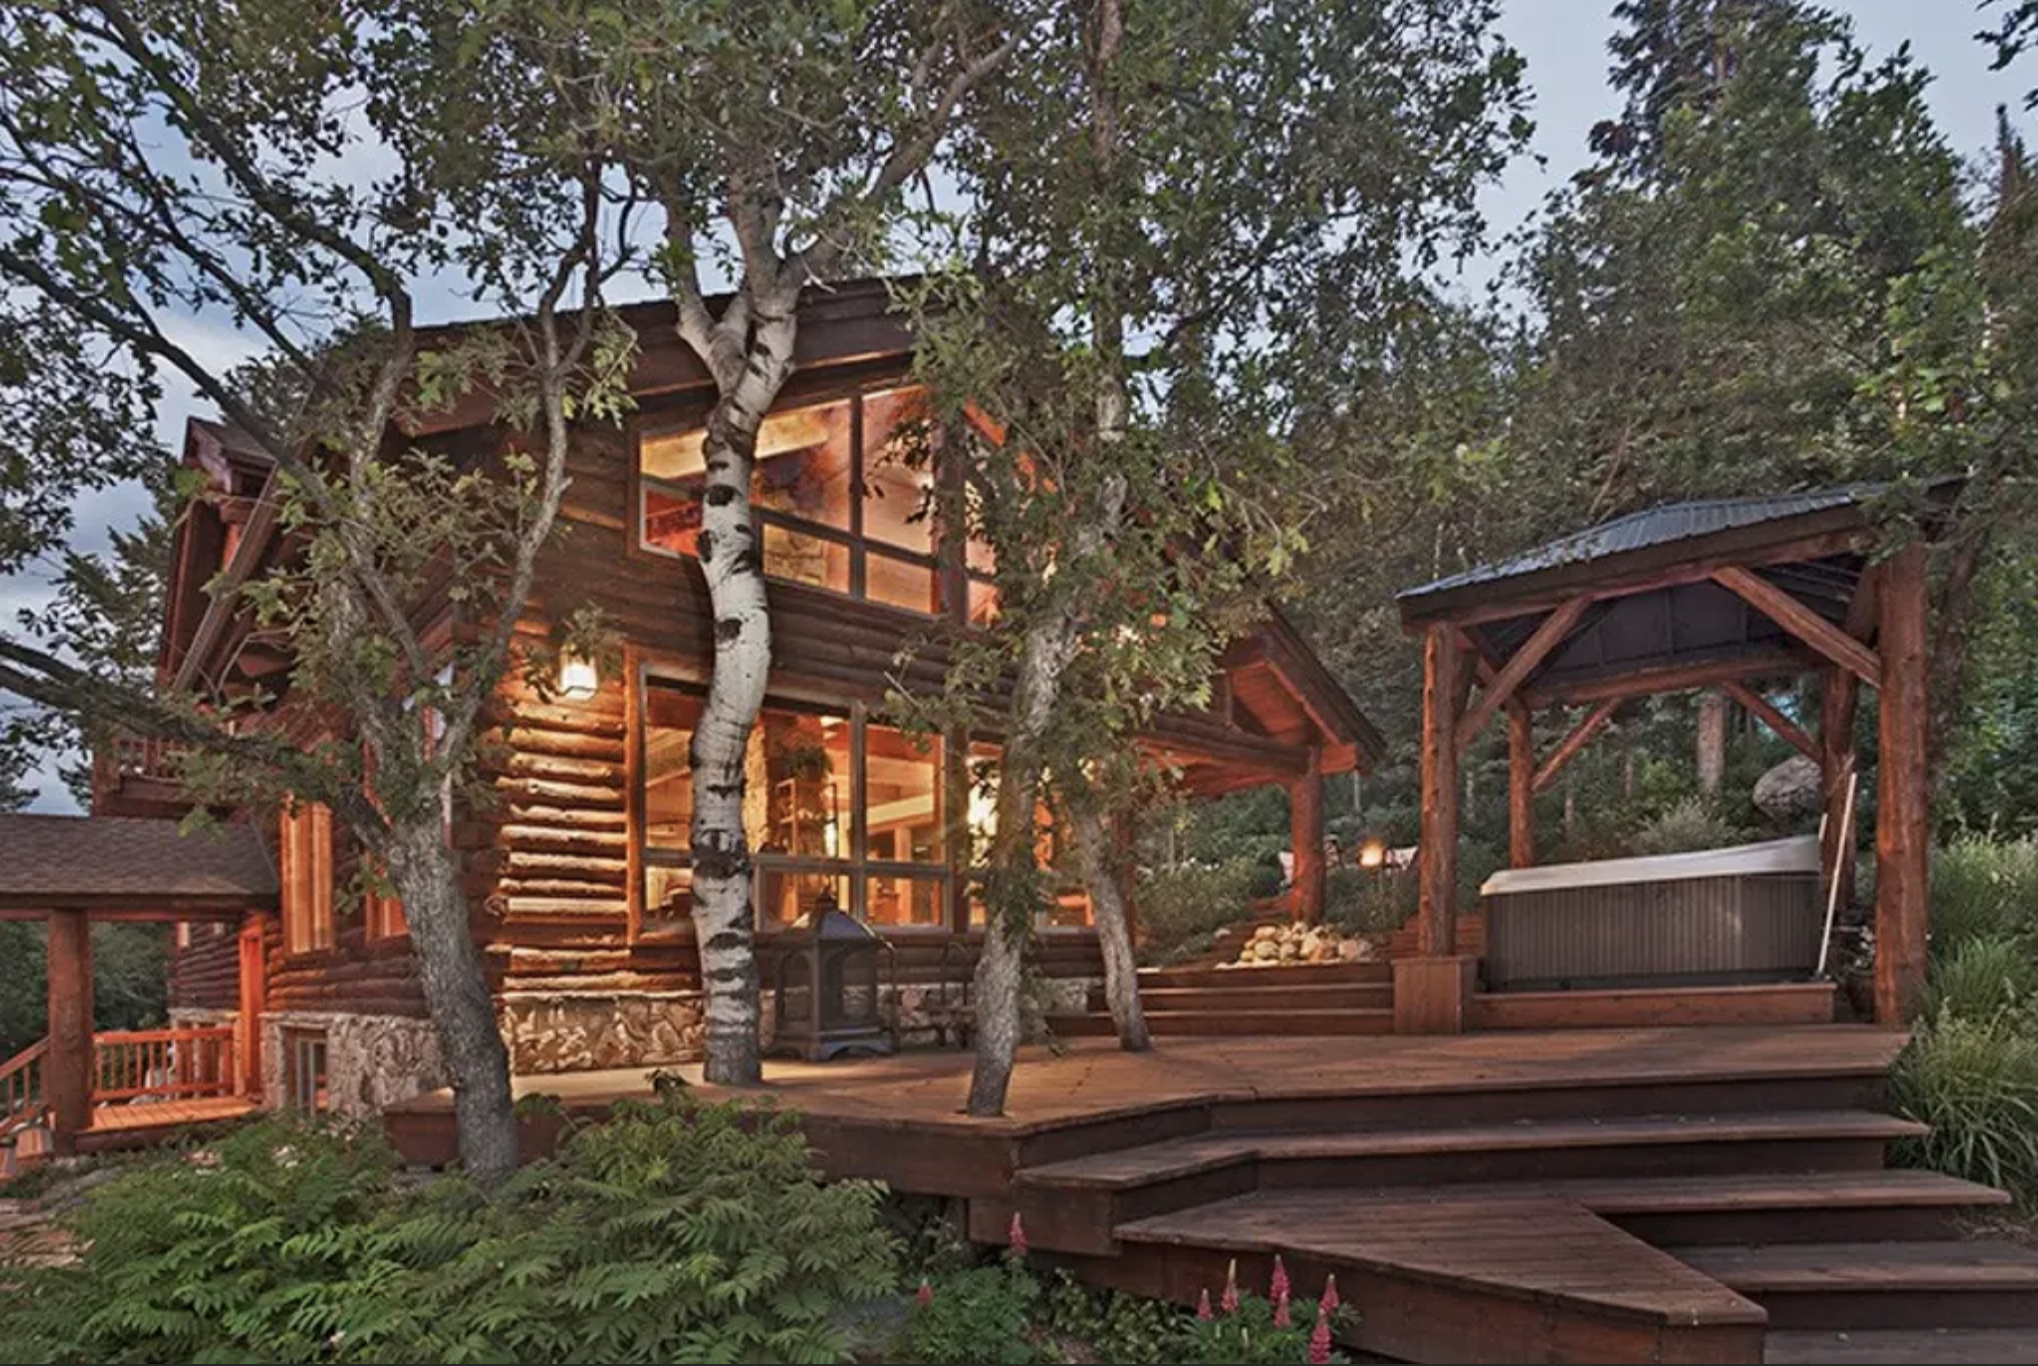 Our beautiful Retreat home in Steamboat Springs, Colorado.